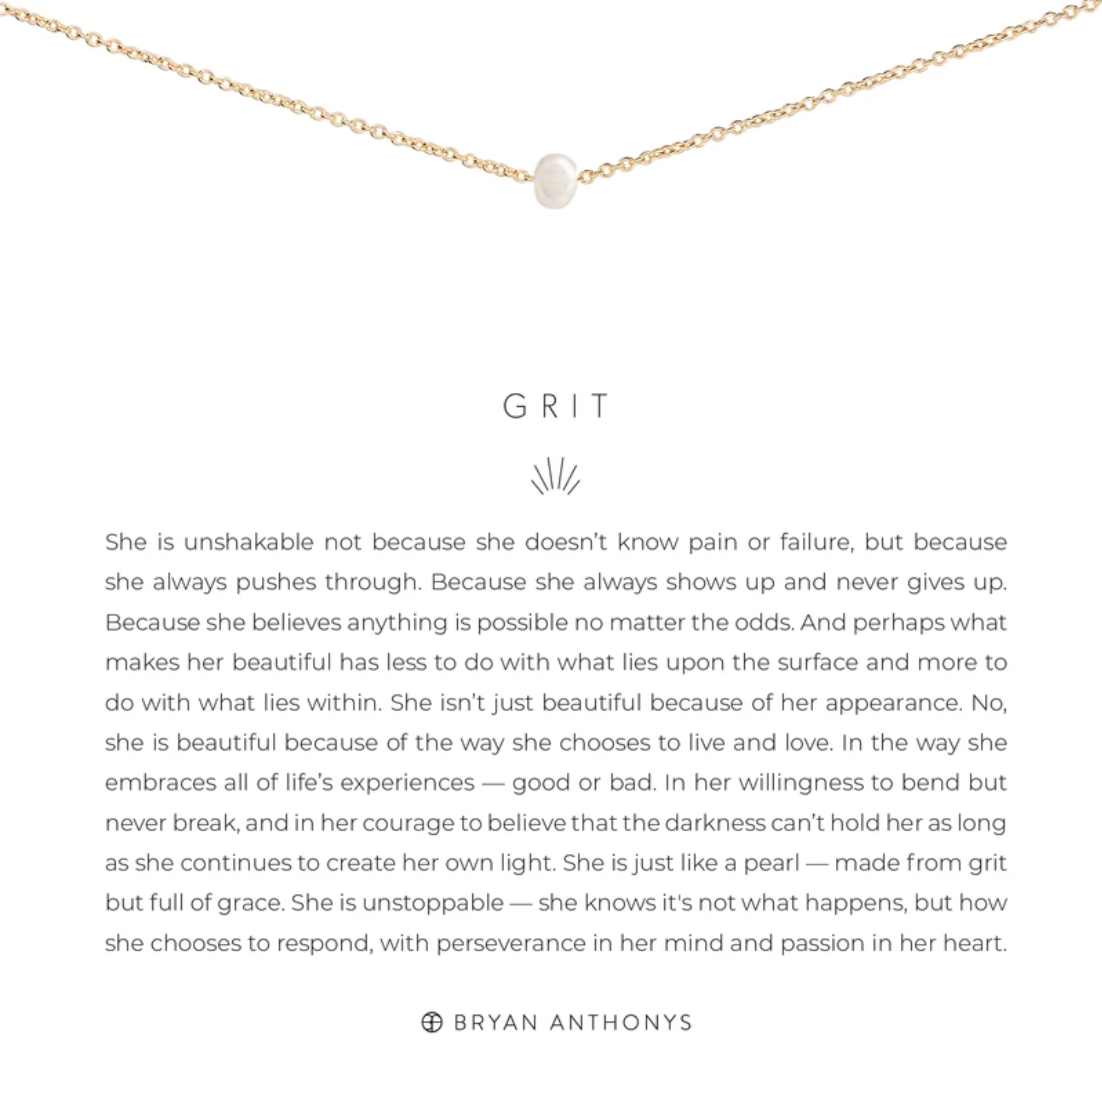 Grit Necklace 14K Gold